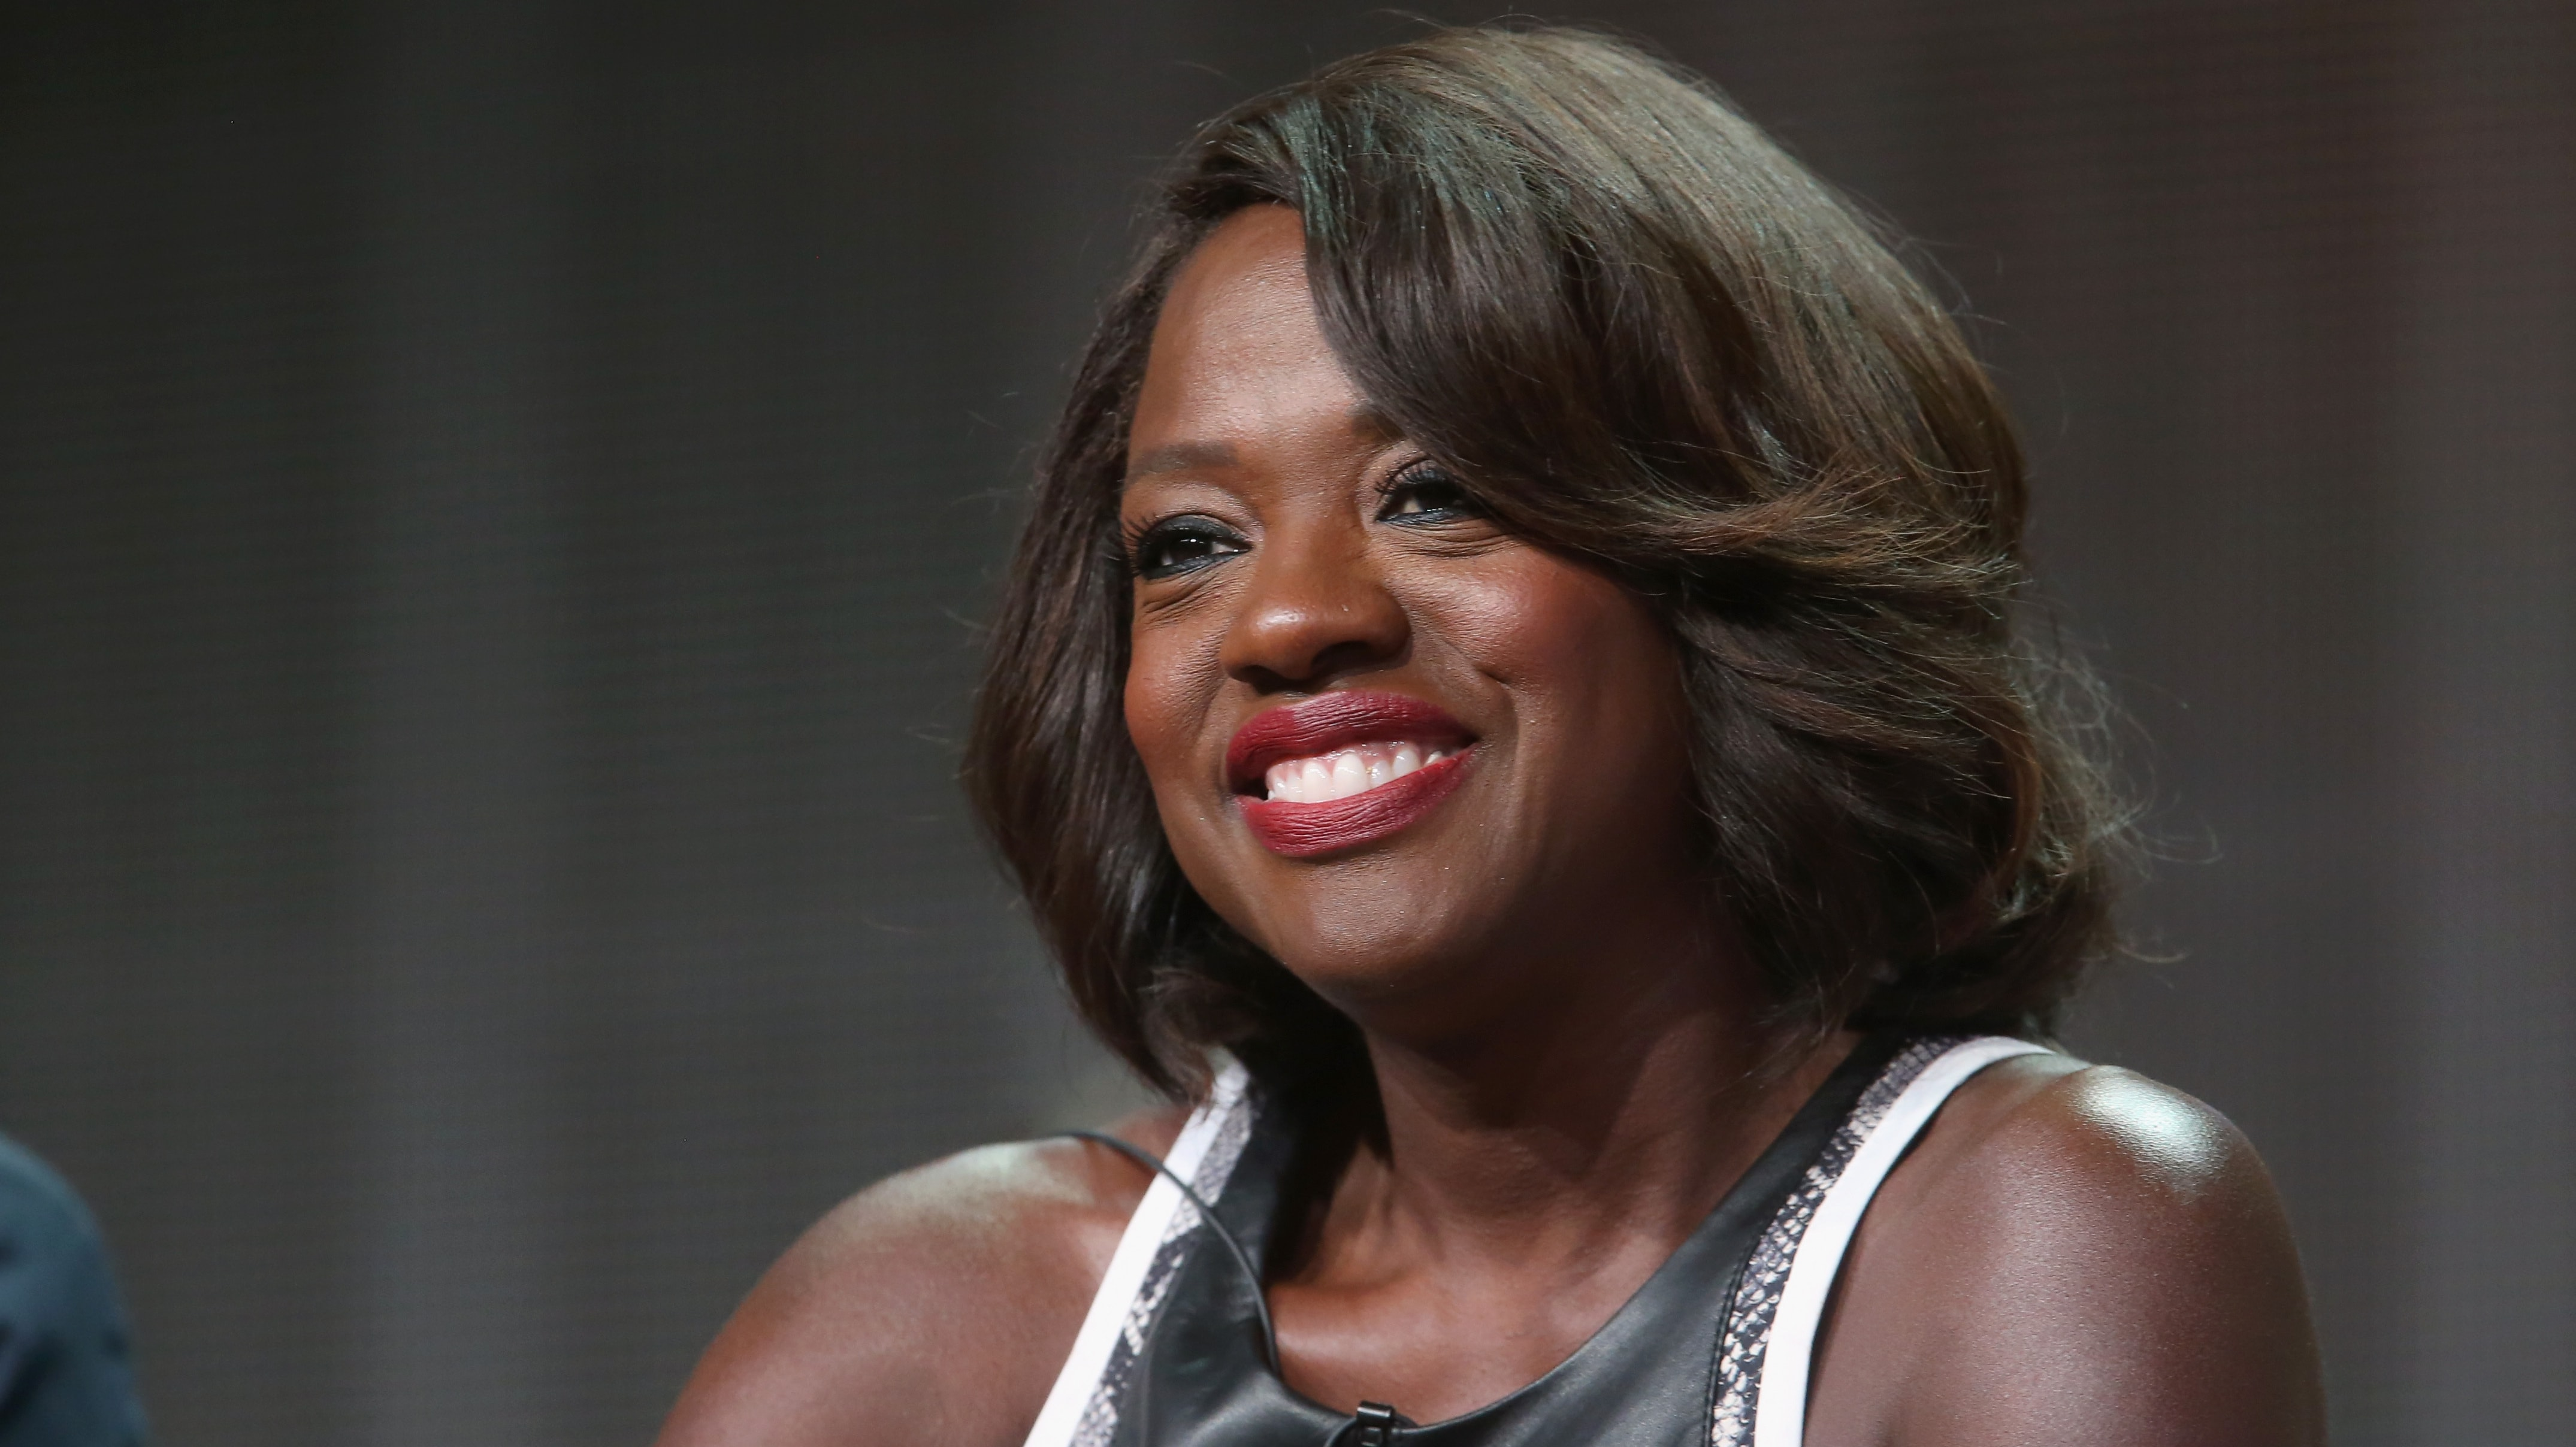 Viola Davis Full hd wallpapers